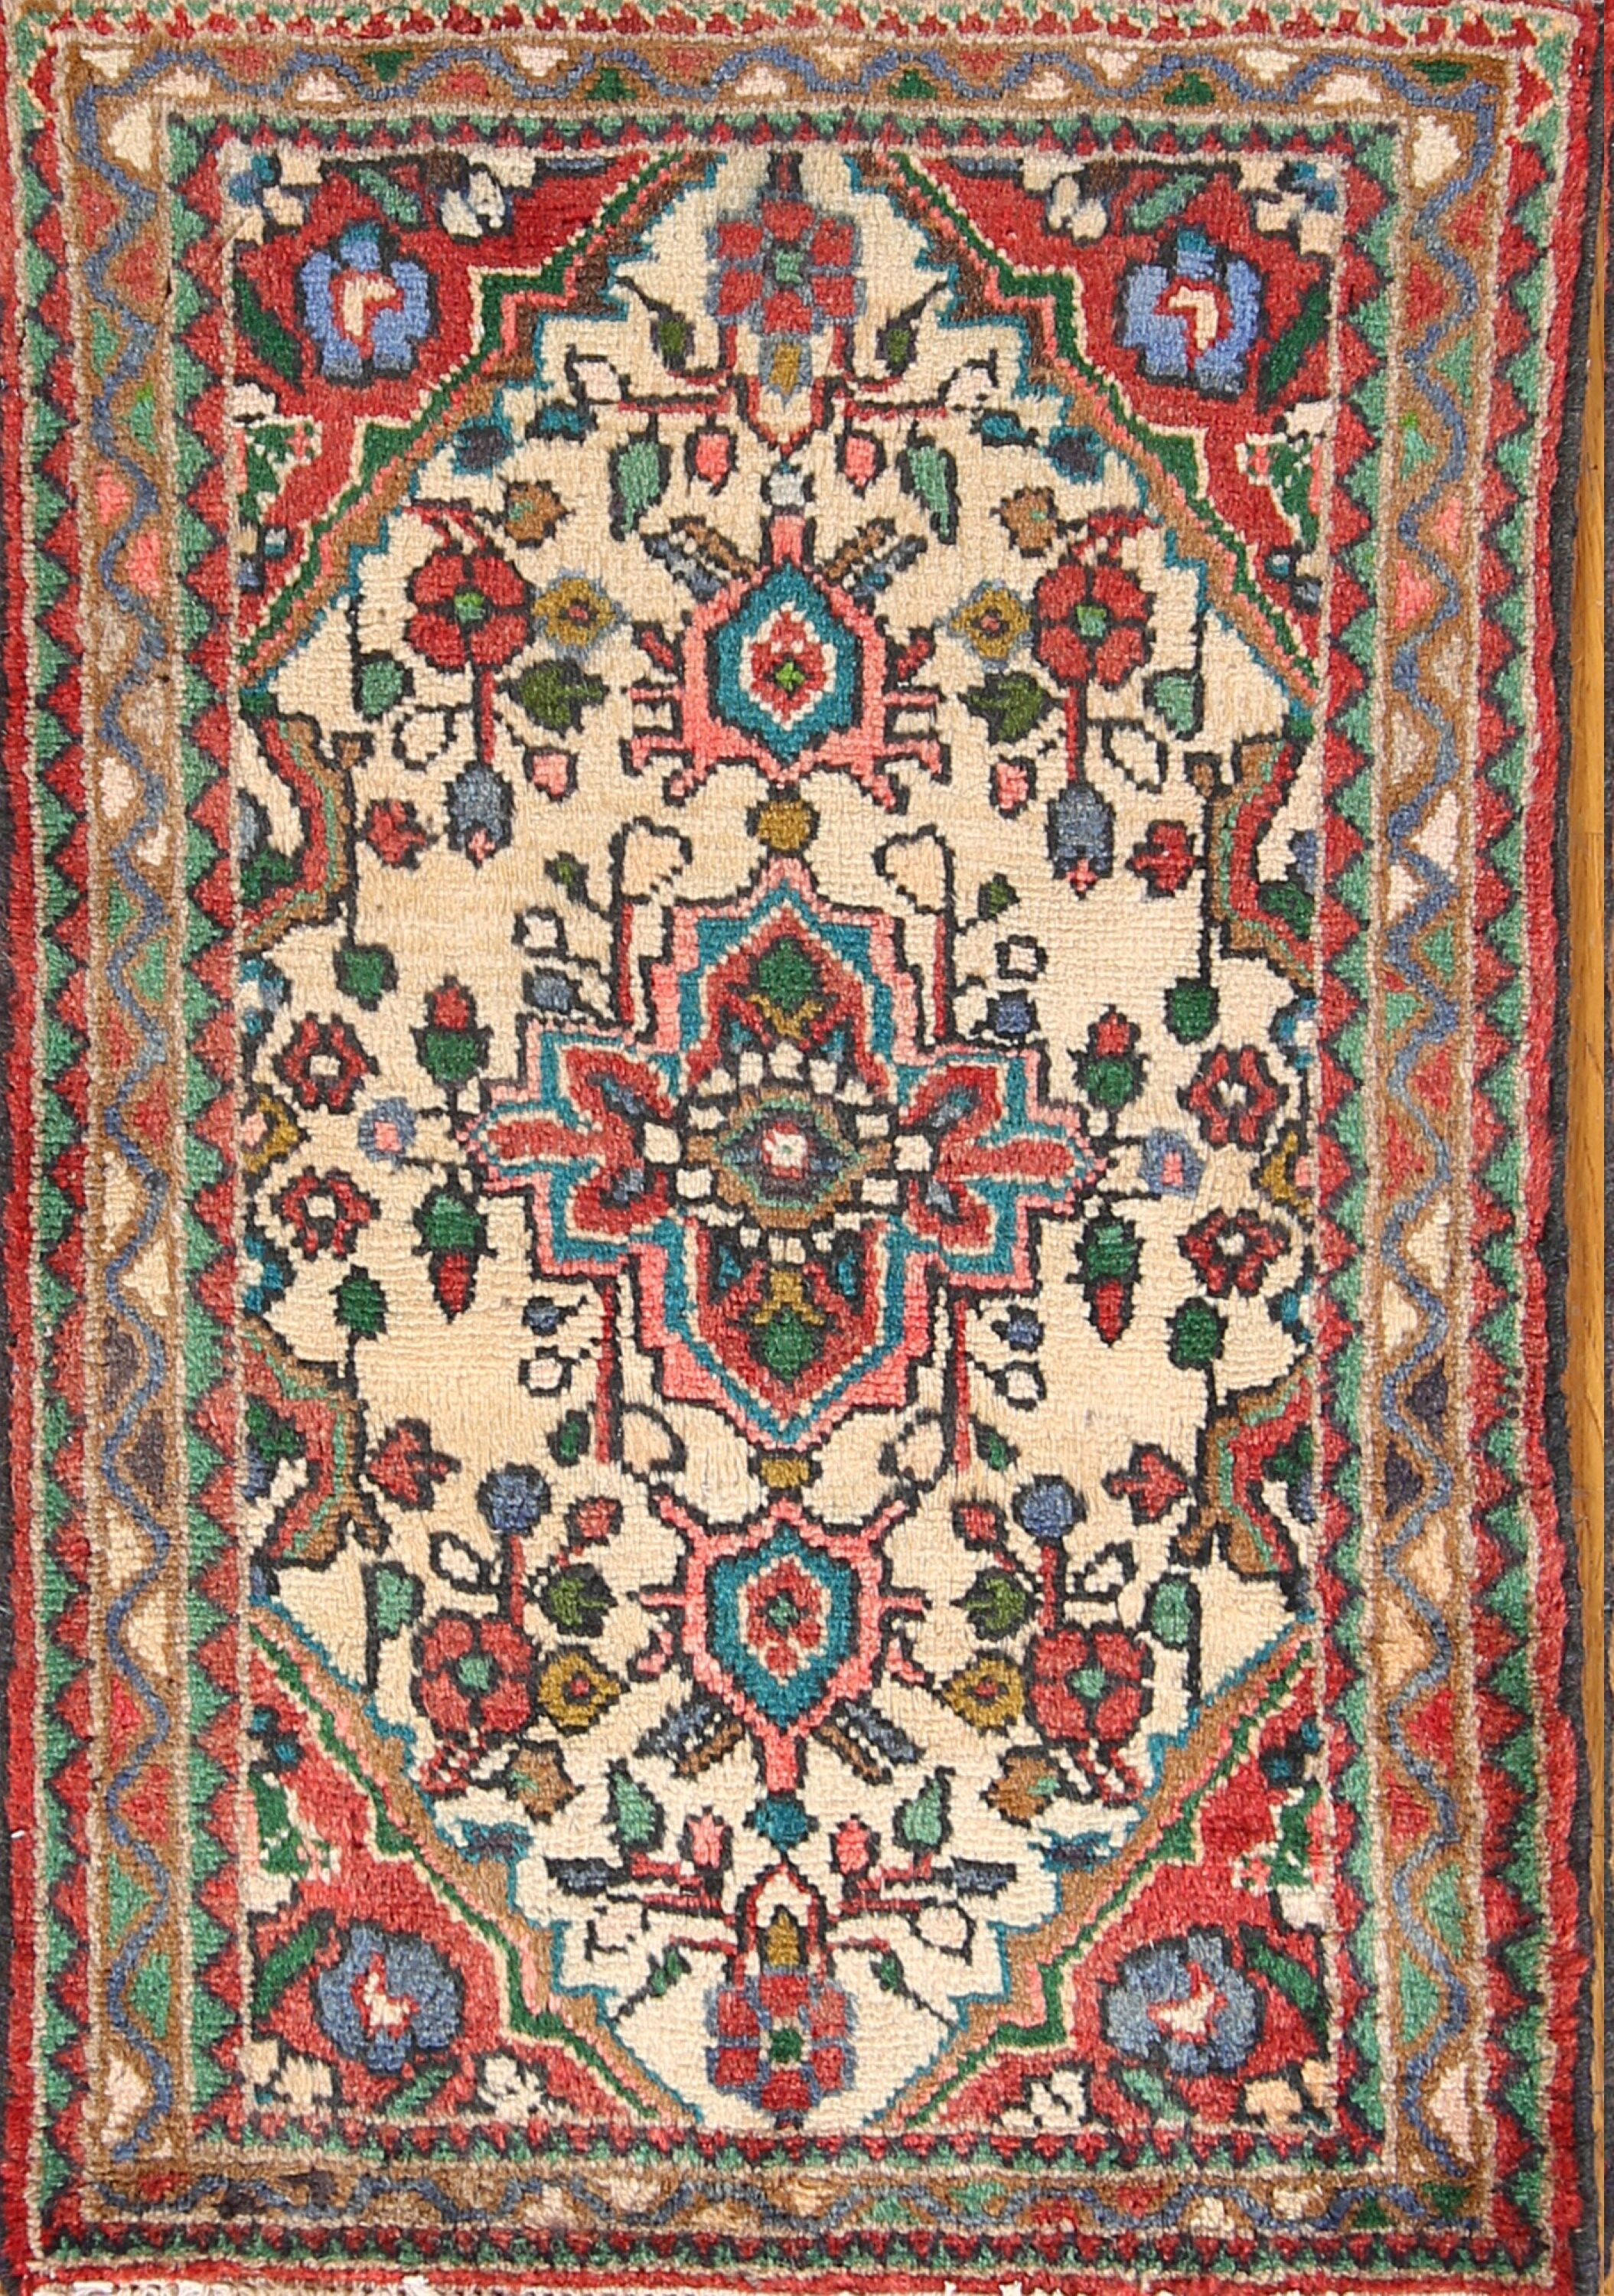 One-of-a-Kind Traditional Floral Hamedan Persian Vintage Hand-Knotted 1'9